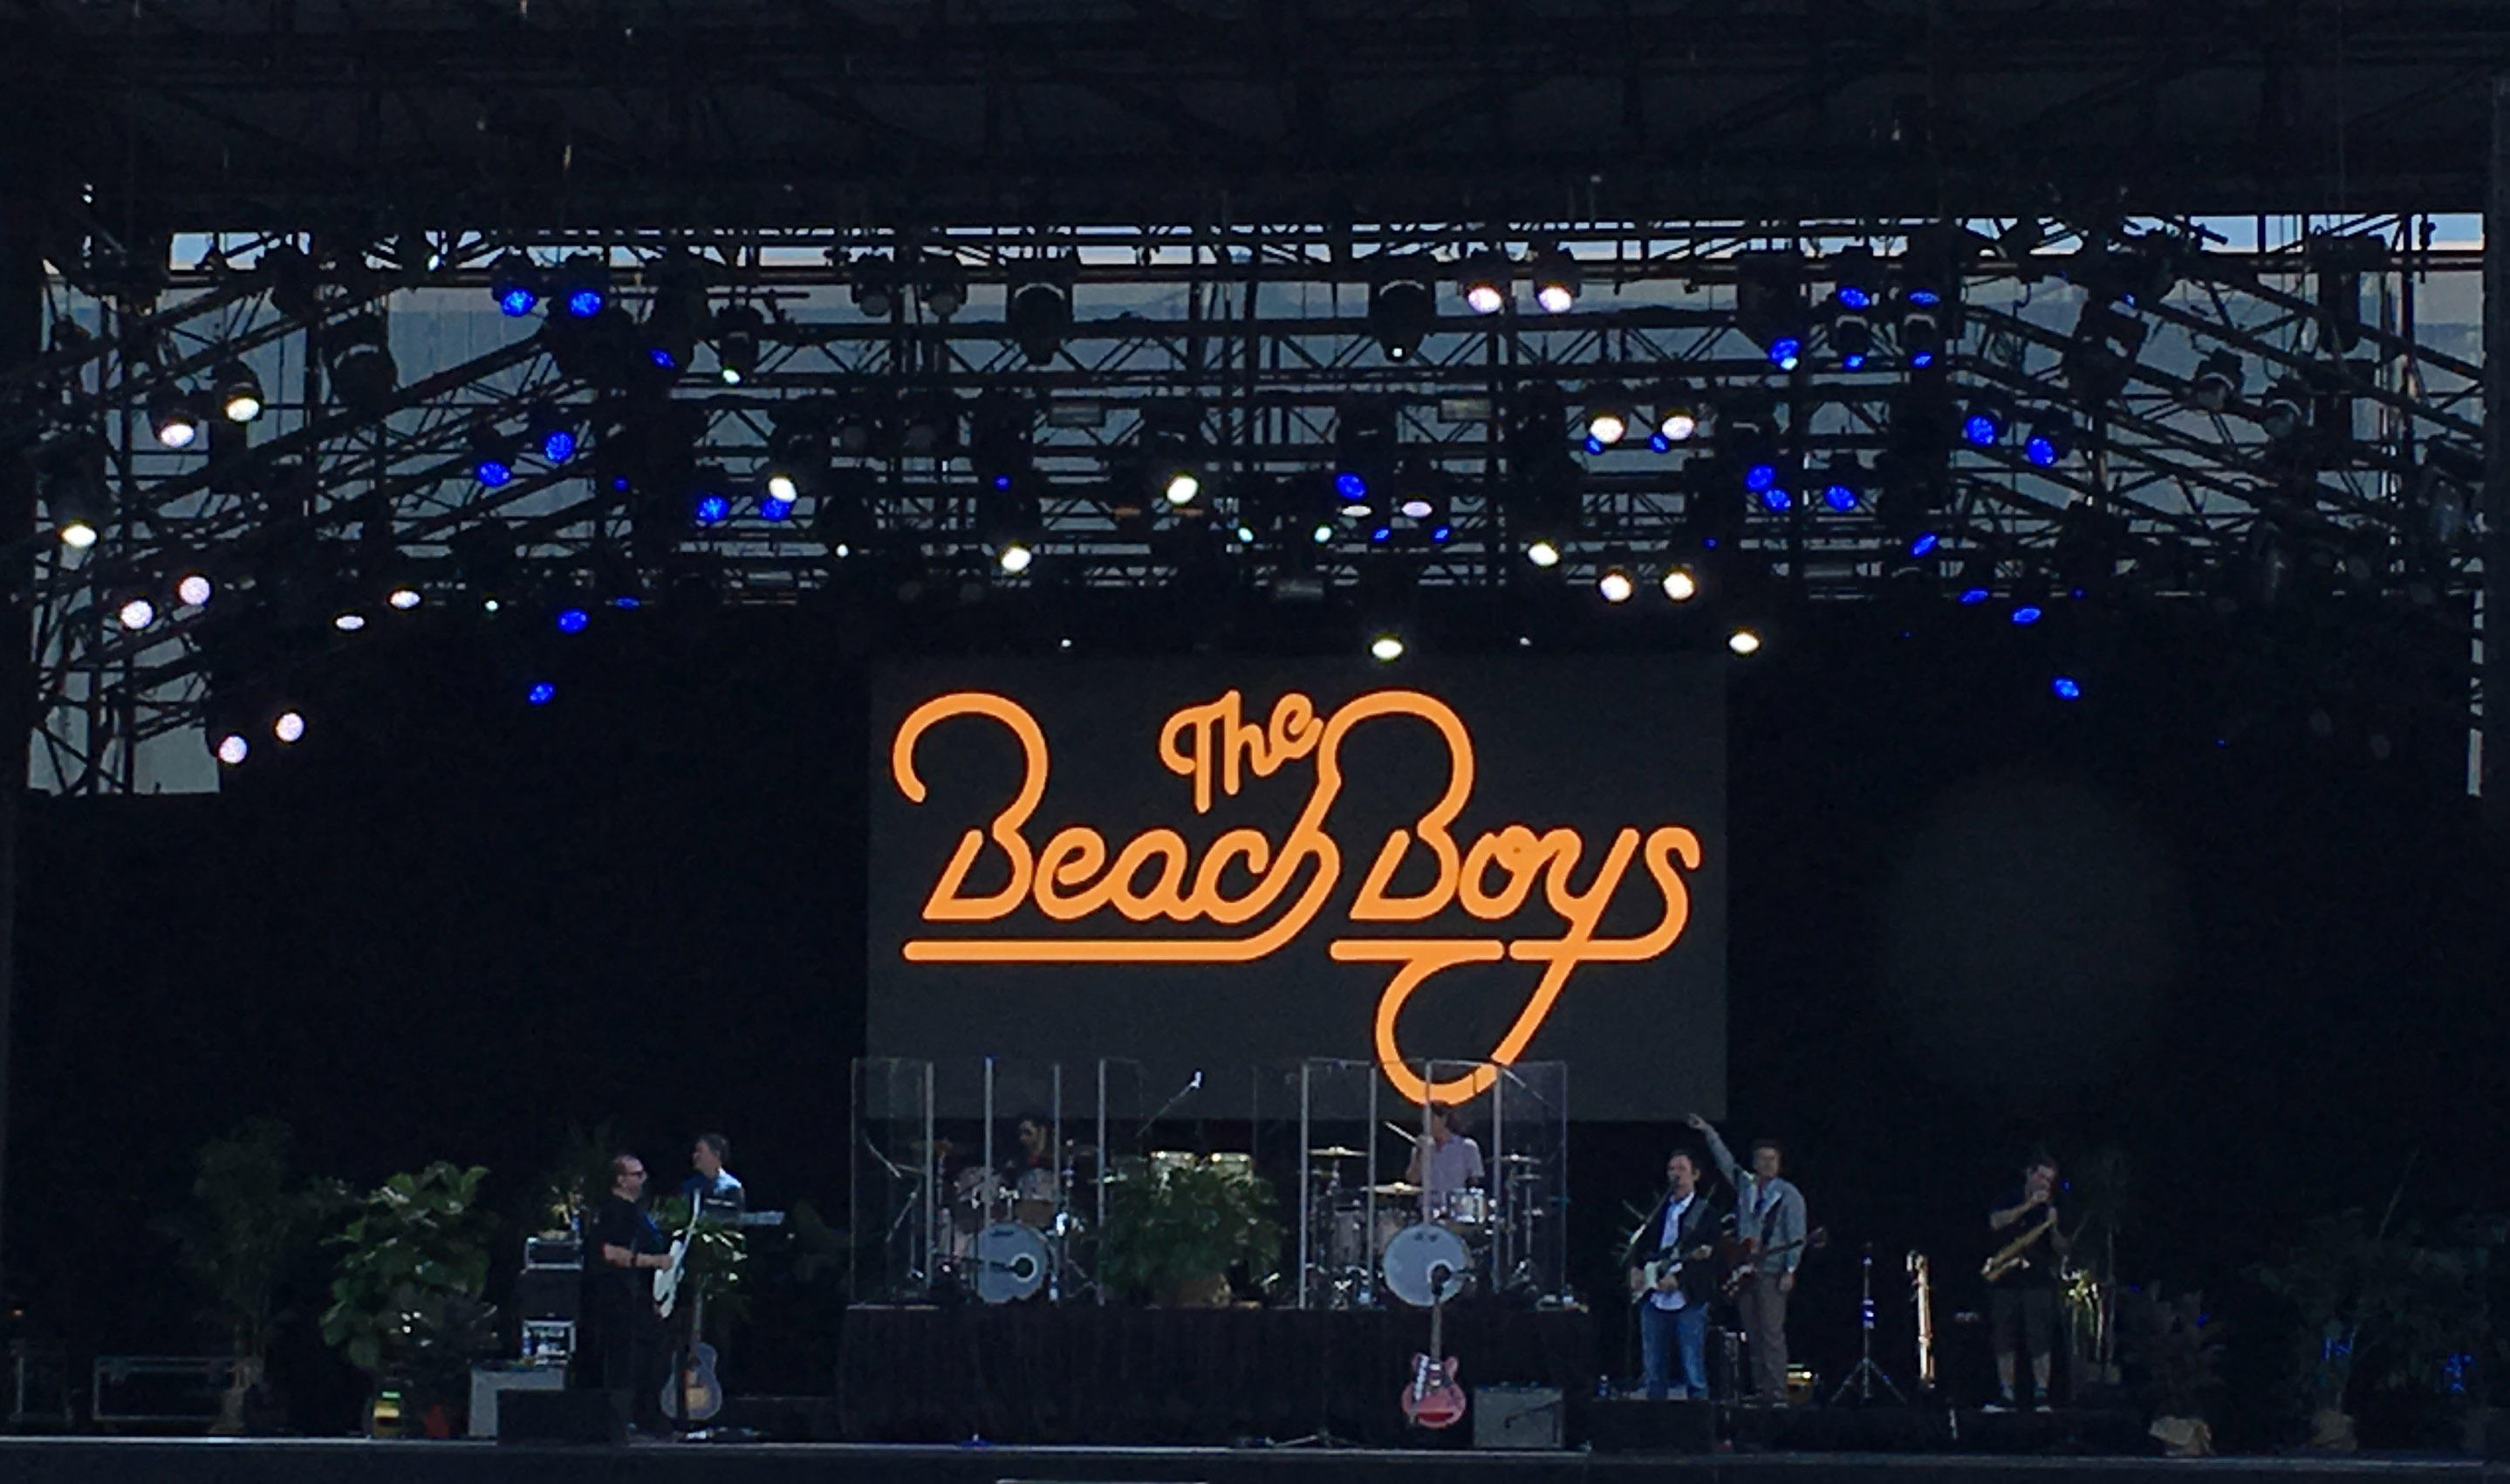 24' x 12' Beach Boys LED video wall